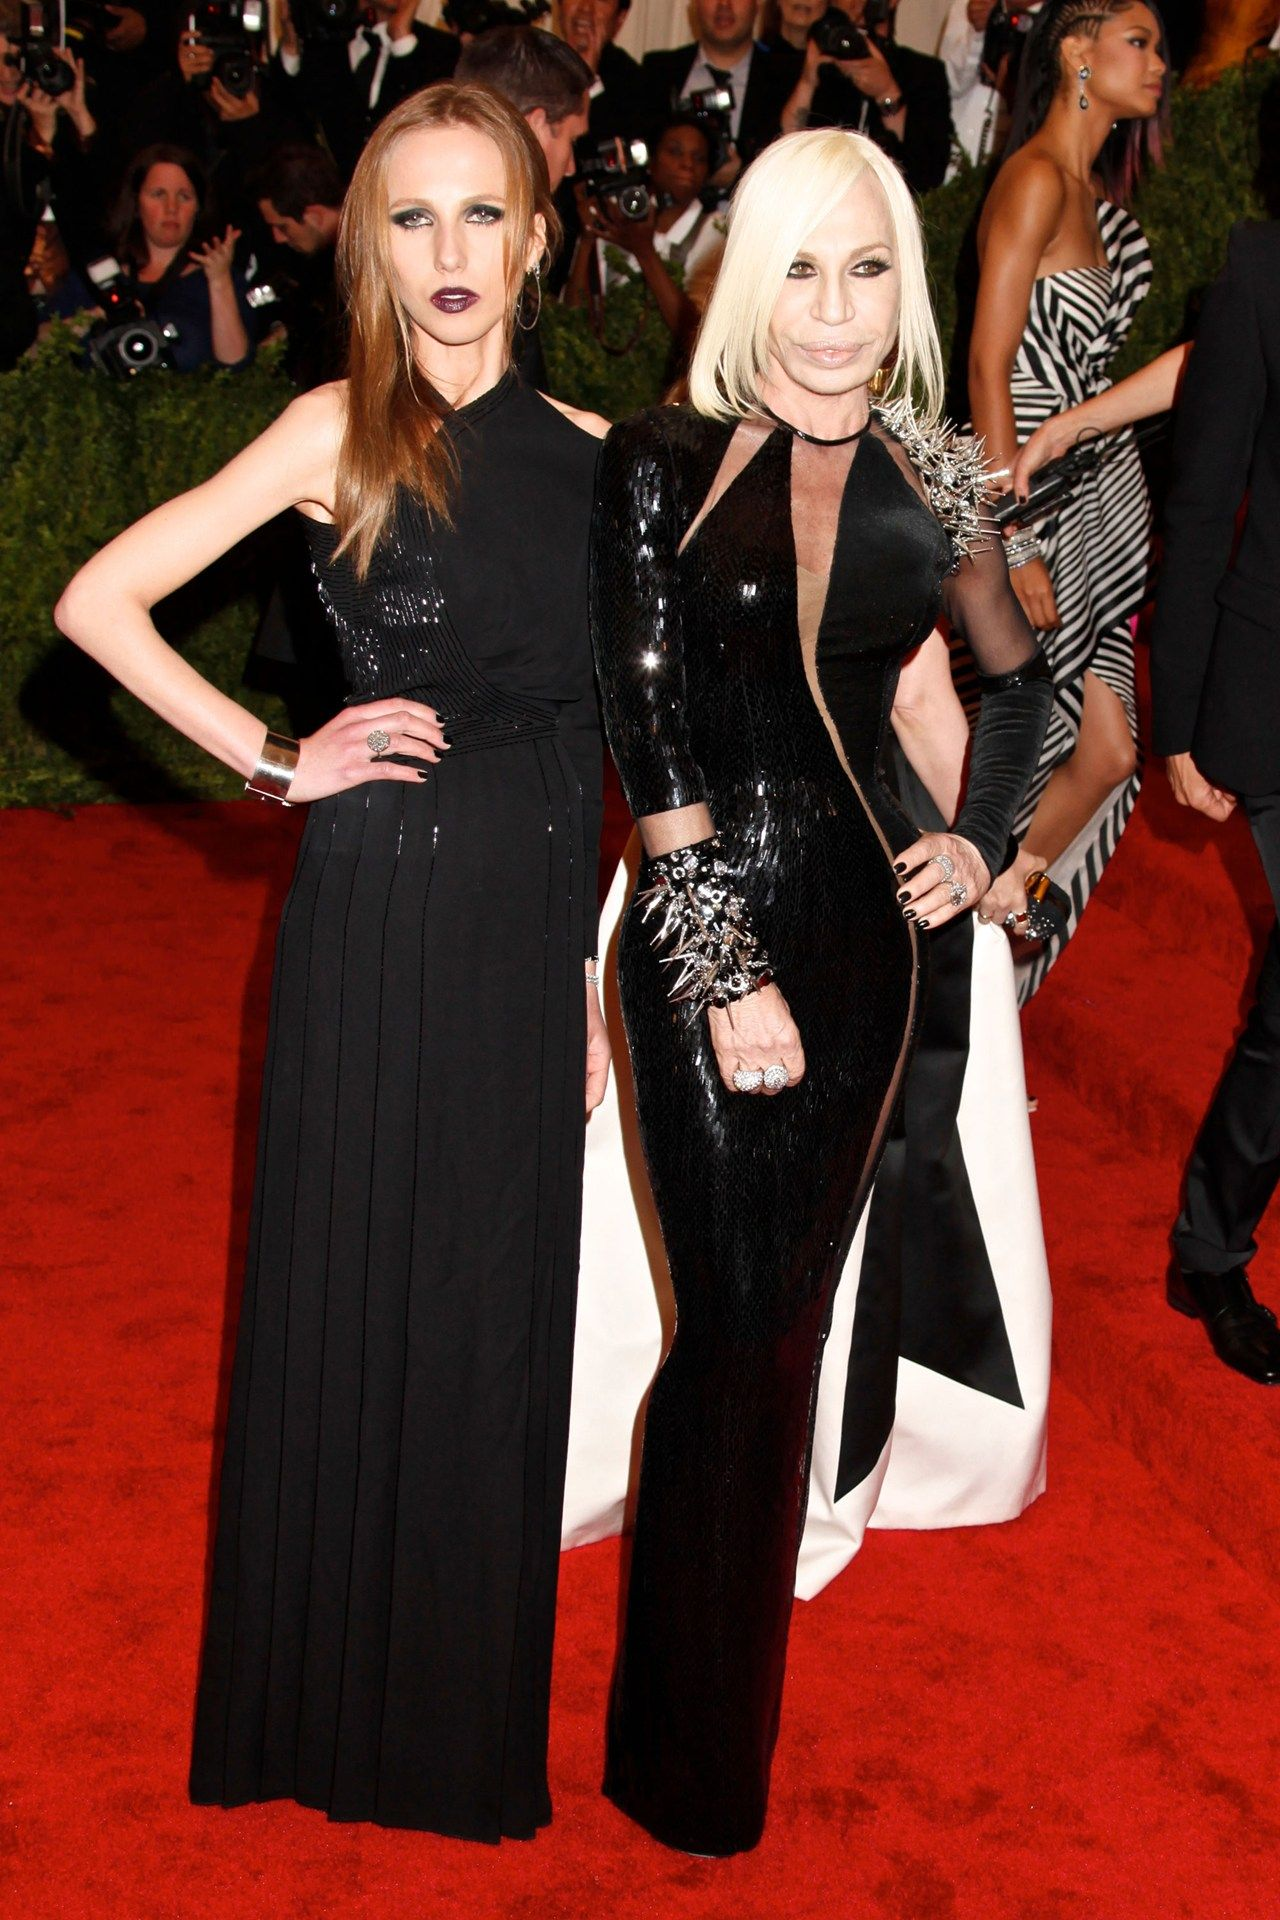 Met Ball 2013 Fashion Celebrity Look Alike Versace Gown